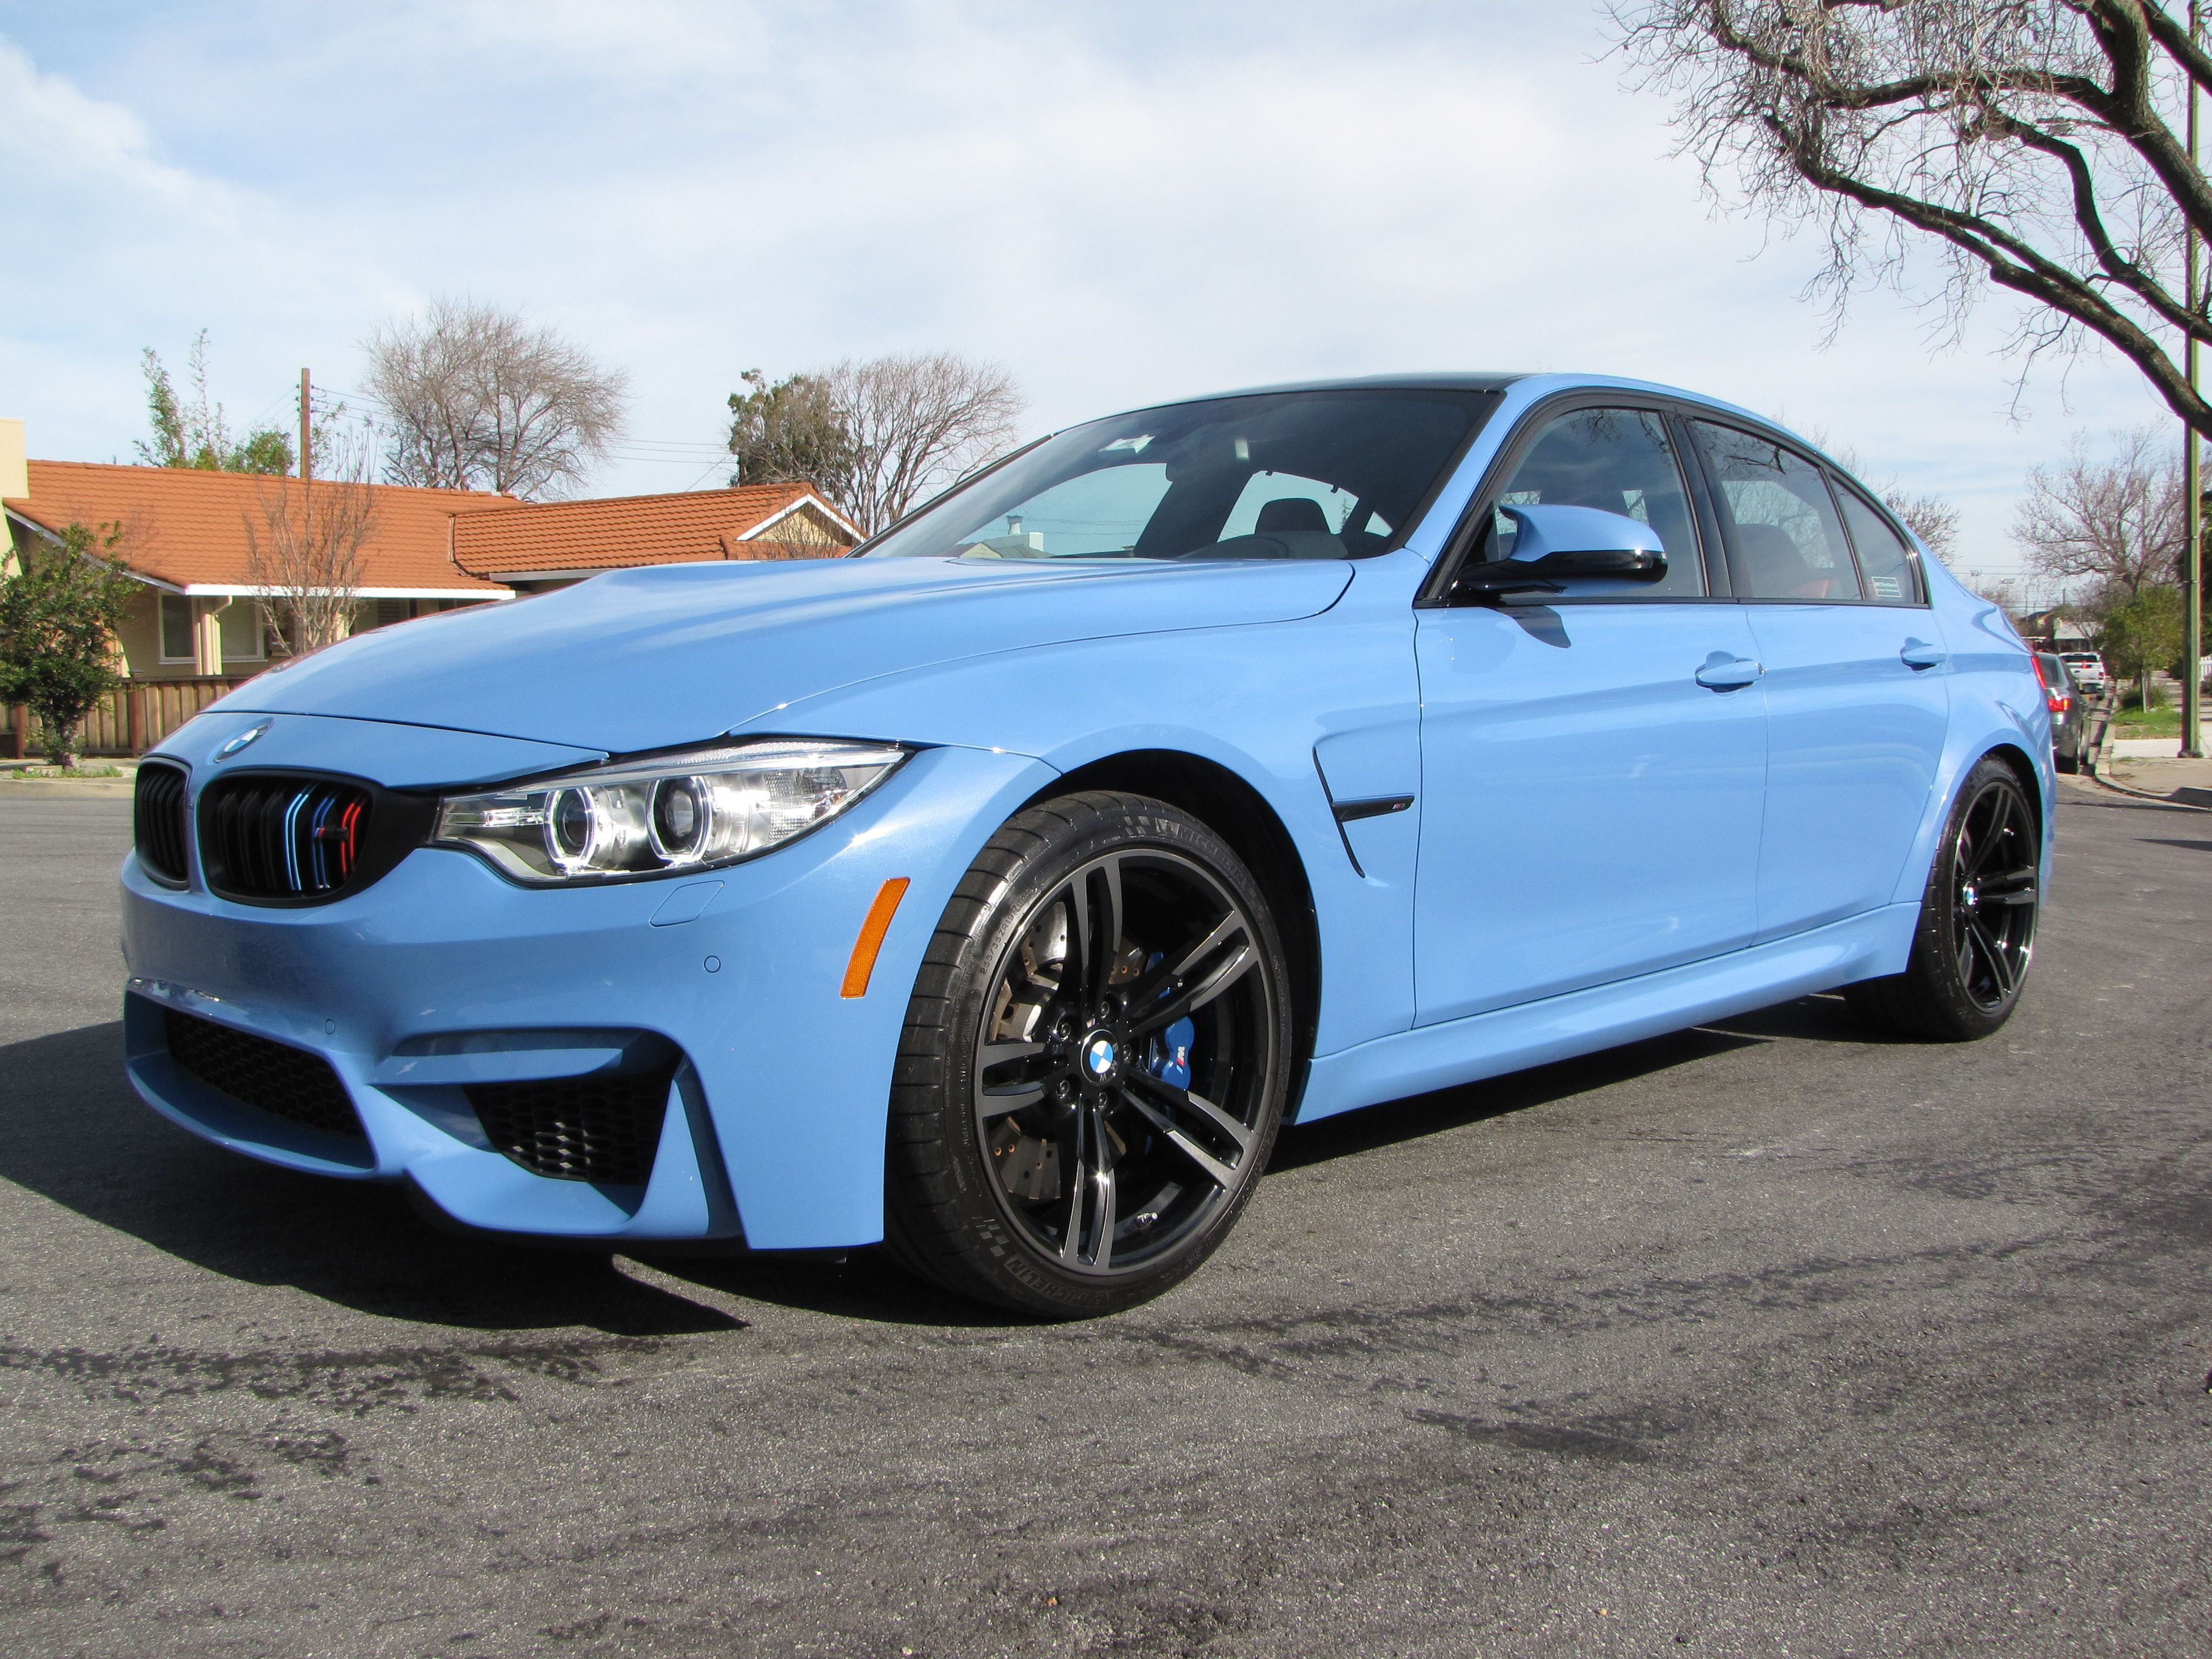 2015 Bmw M3 Paint Correction And Gloss Coat Ceramic Coating Windshield Glass 2015 Bmw M3